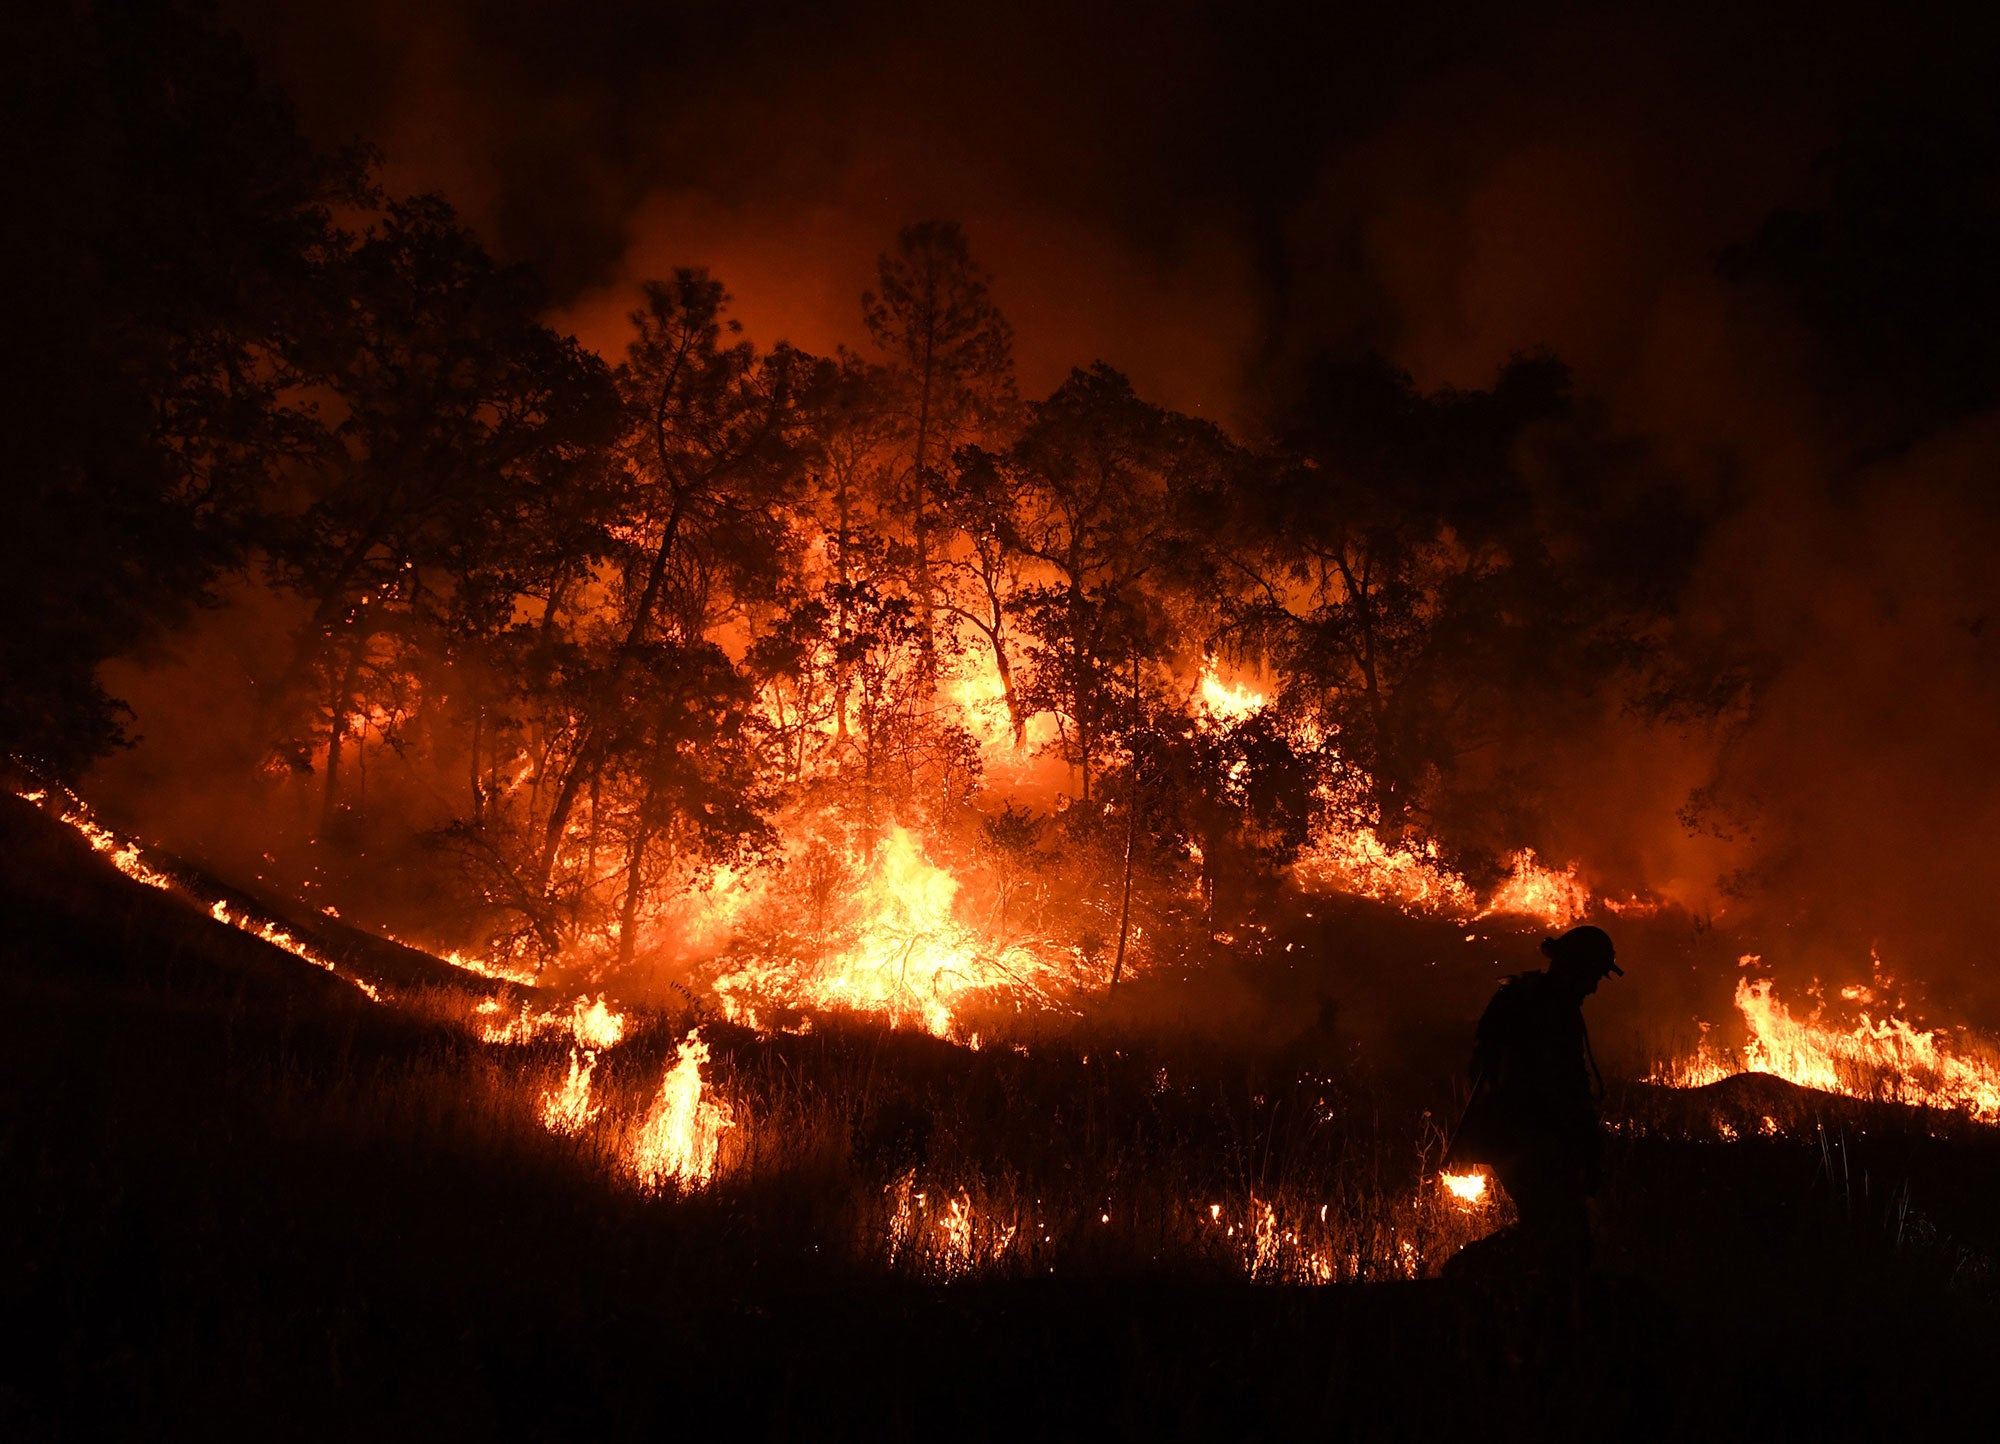 How parched states like California fight wildfires